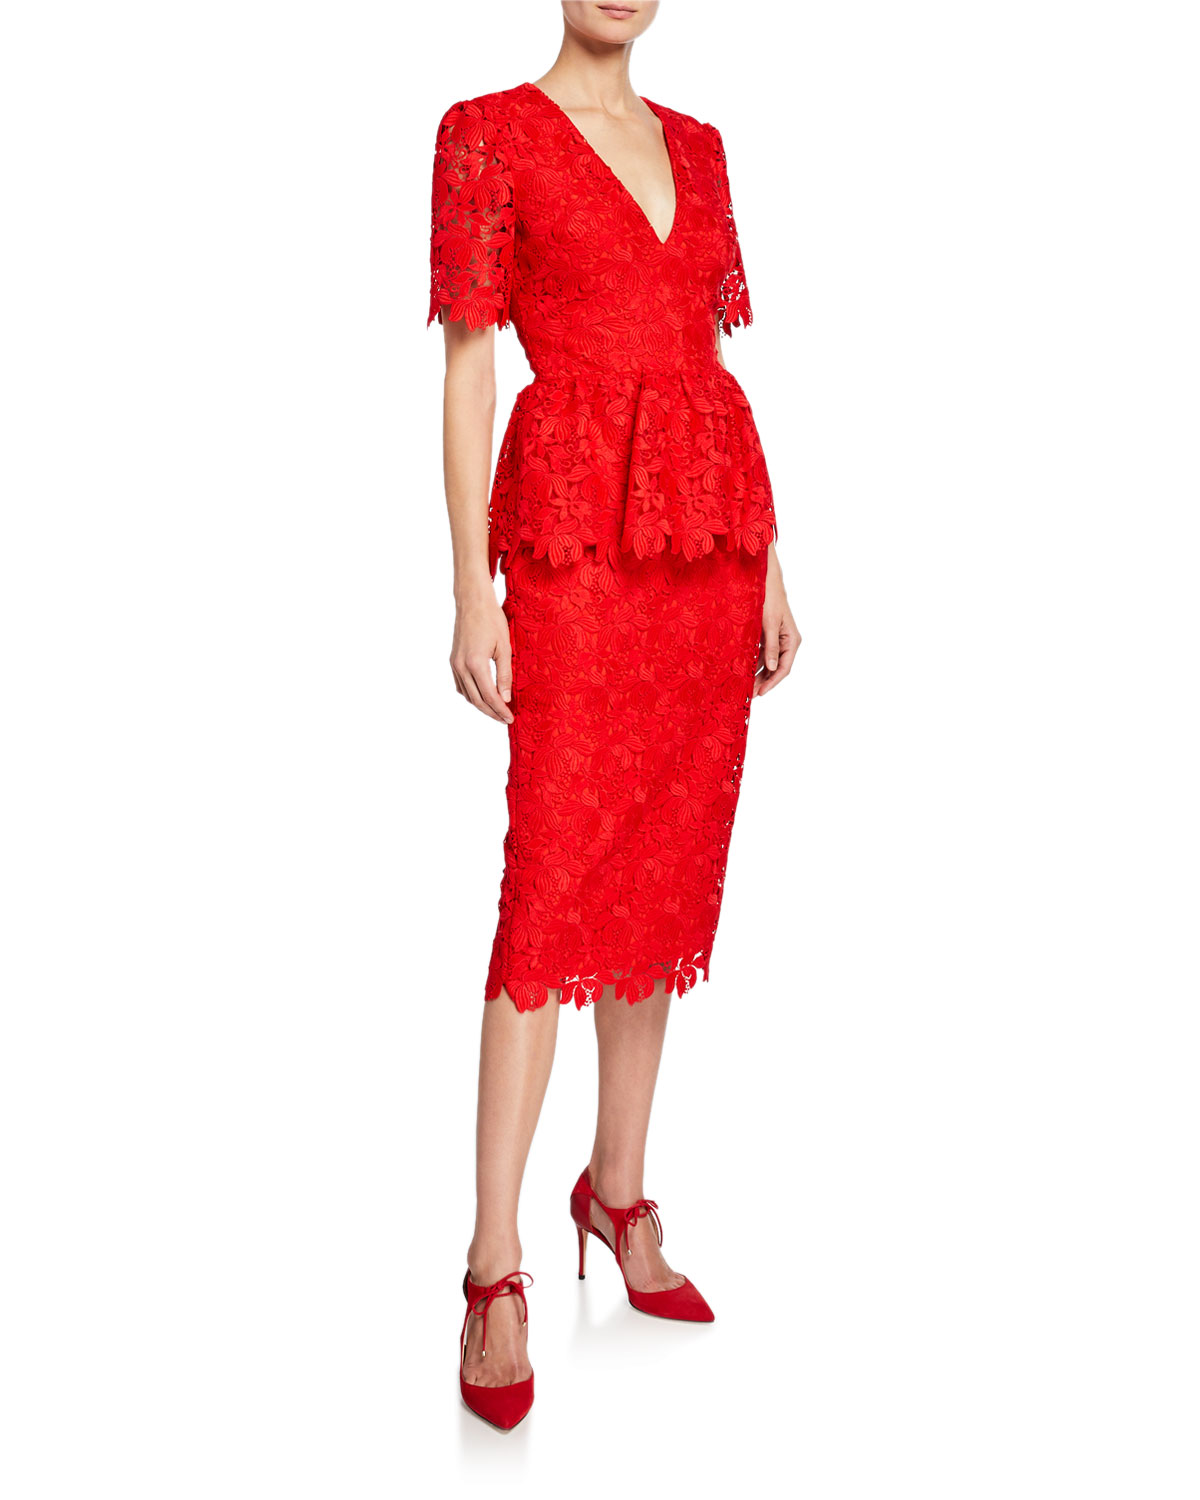 a86bf023628 Badgley Mischka V-Neck Short-Sleeve Scallop Lace Peplum Dress In Red ...